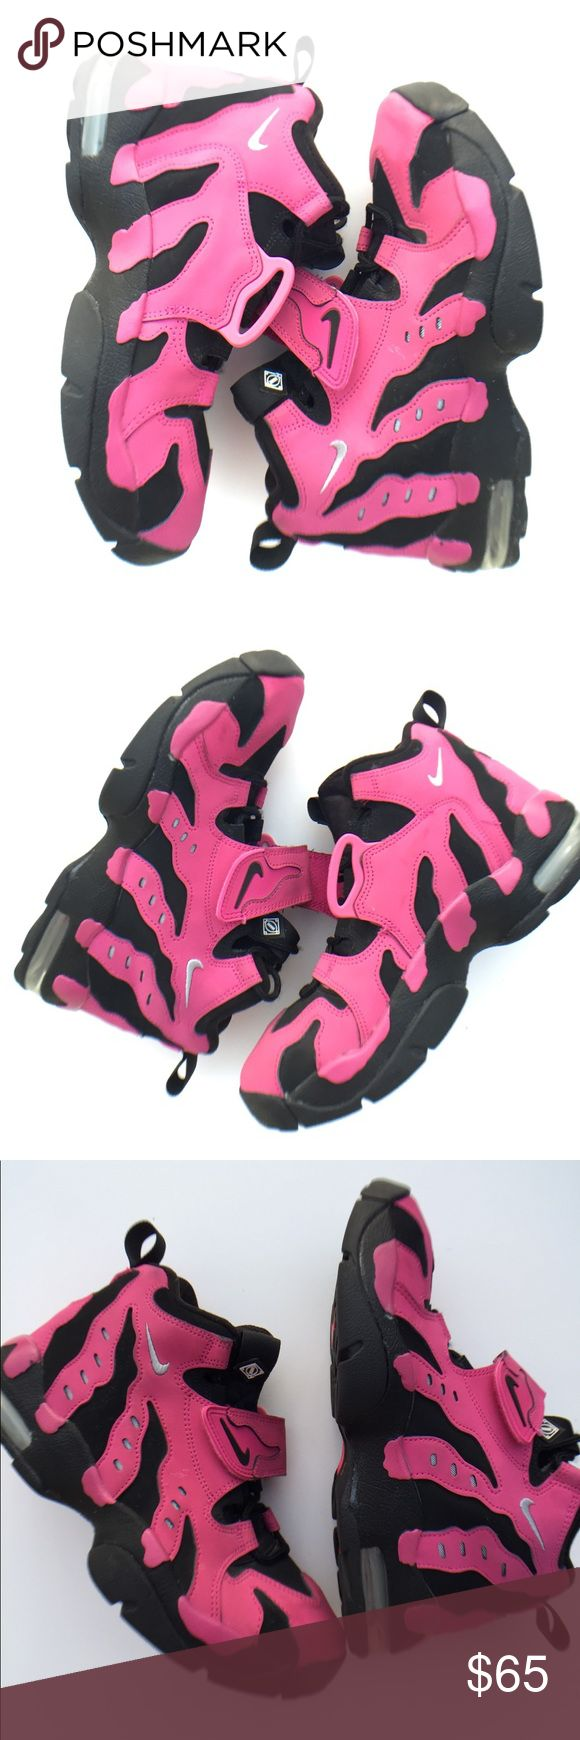 Nike Air Diamond Turfs Limited Edition 👣👟 Gently used. Worn 2x. Nike Shoes Sneakers